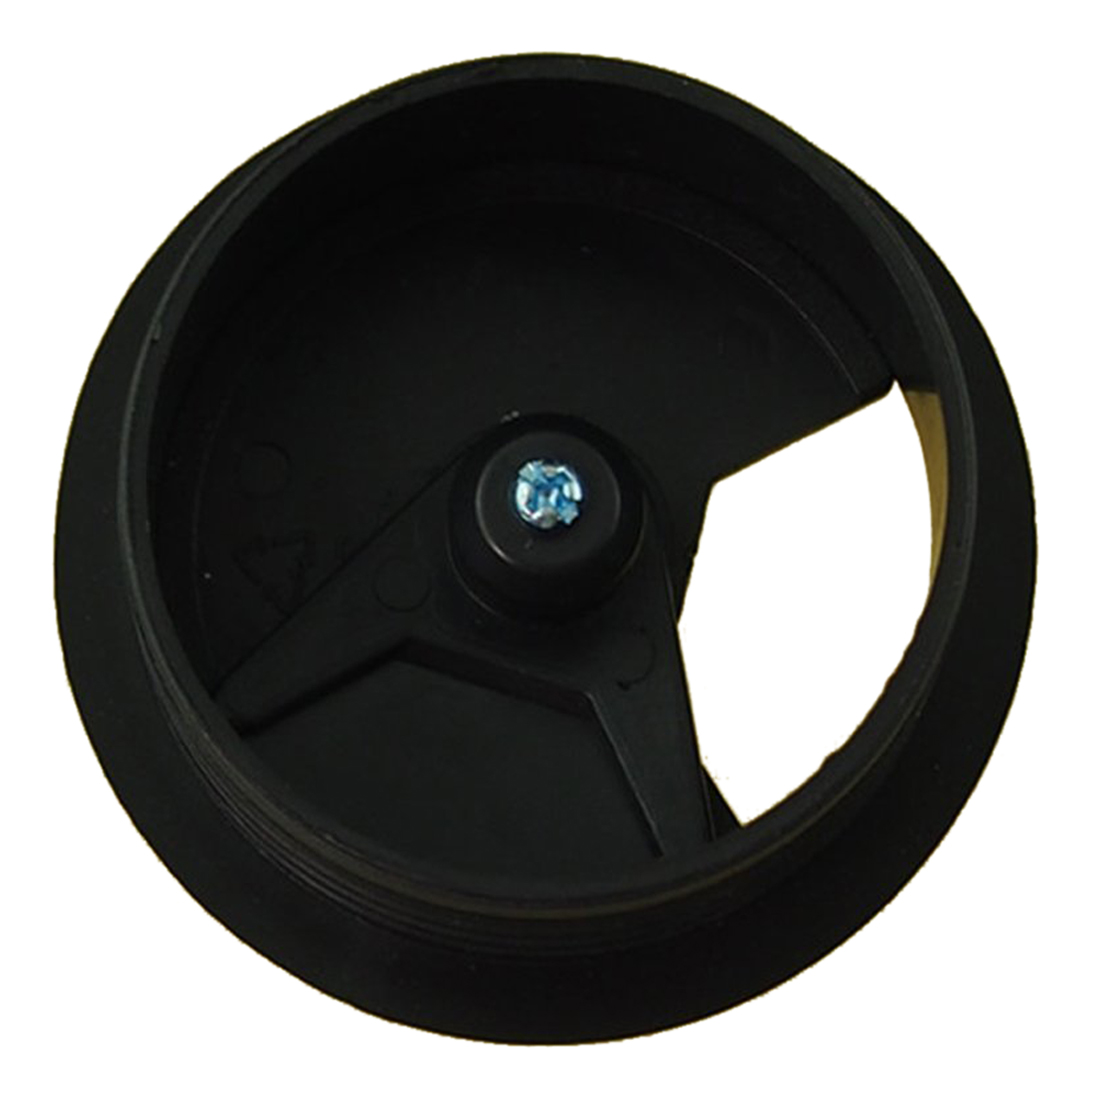 Furniture Black 60mm Round Grommet Cable Hole Cover For Computer Desk 5 Pcs